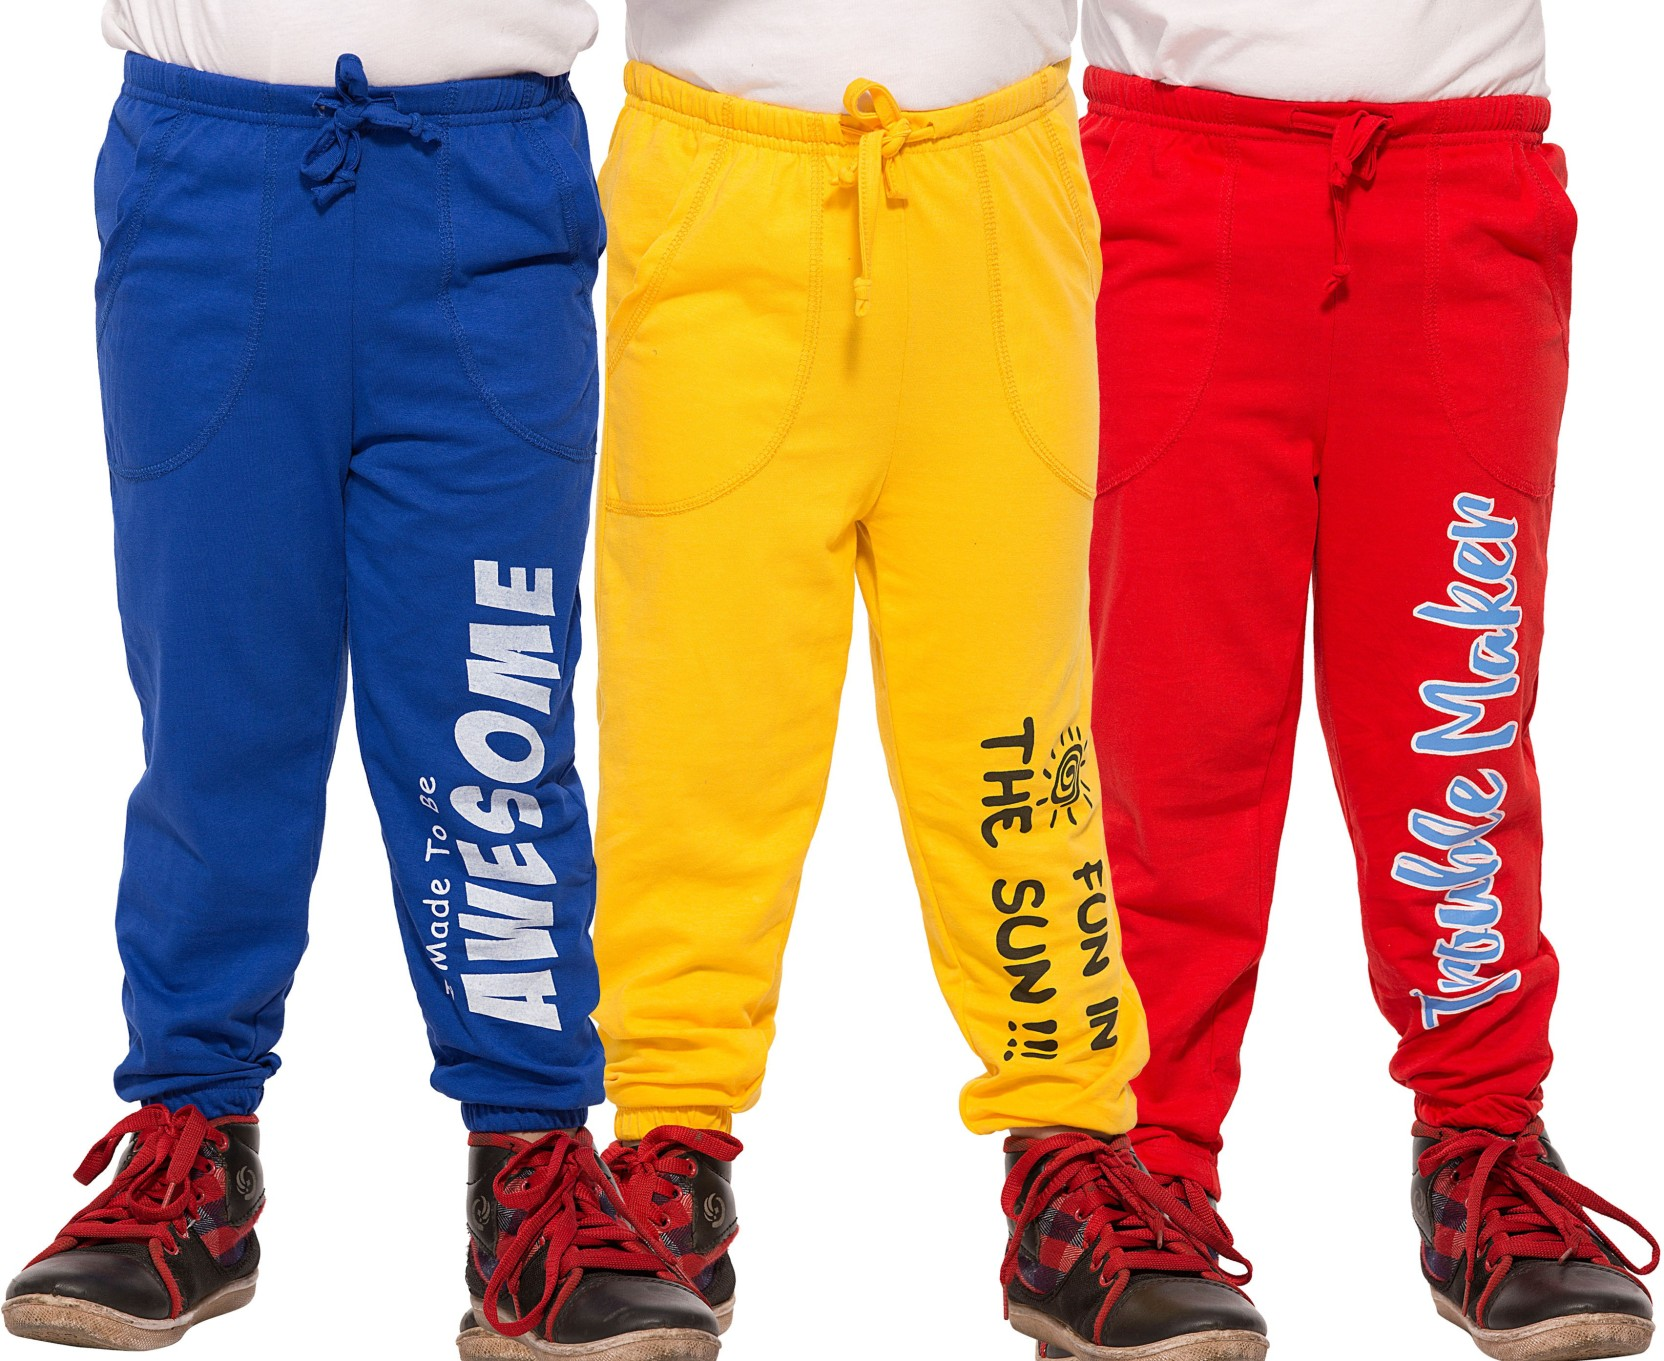 Buy Tracksuits, Track-pants for Boys online @ best prices on Snapdeal. Choose from best range of Boy's Tracksuits for your kids. Get FREE Shipping & COD options across India.